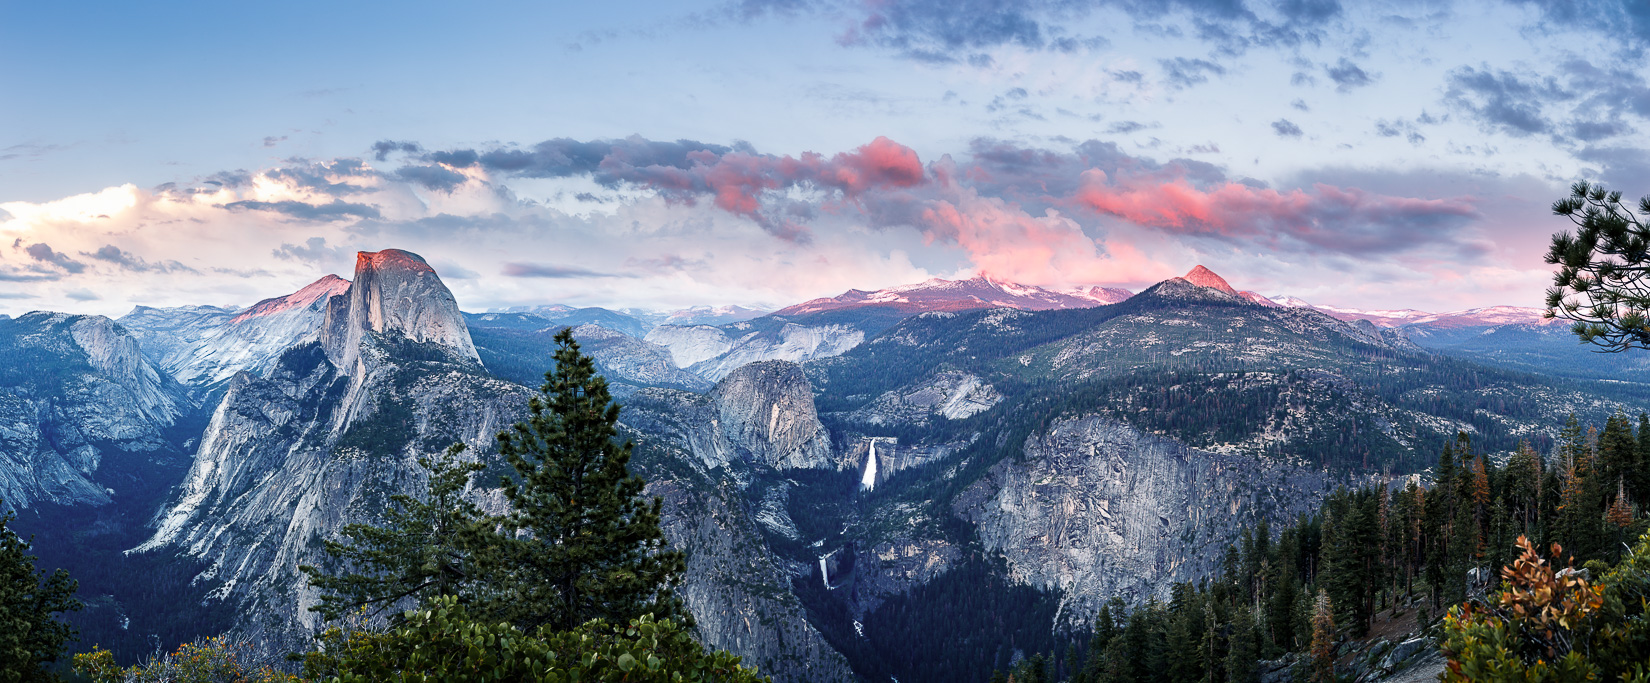 Yosemite Vista | Glacier Point